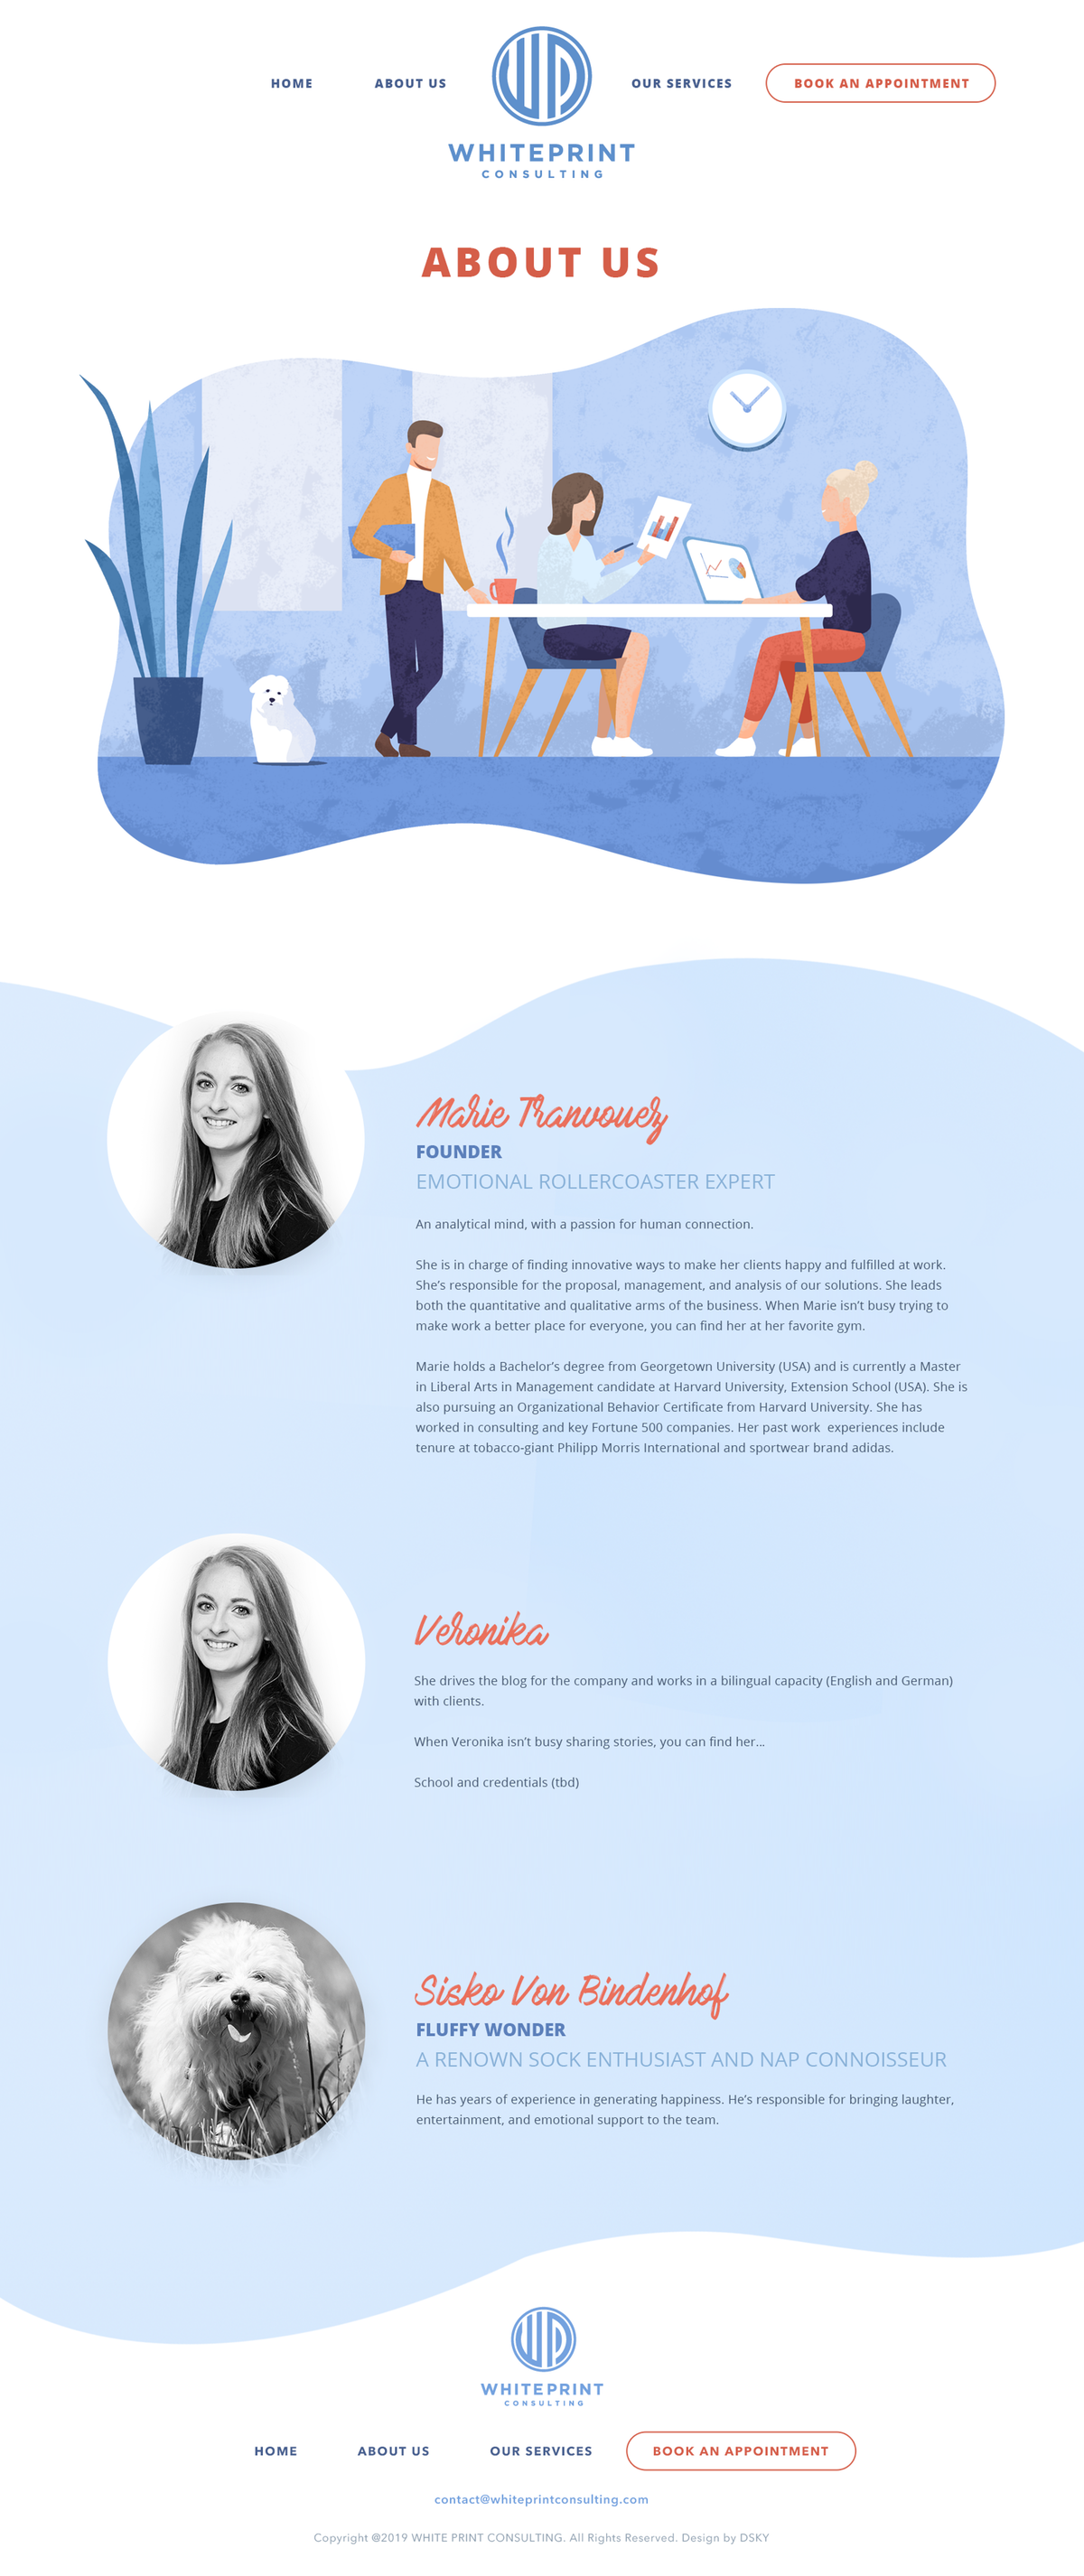 About us page design for a consulting company